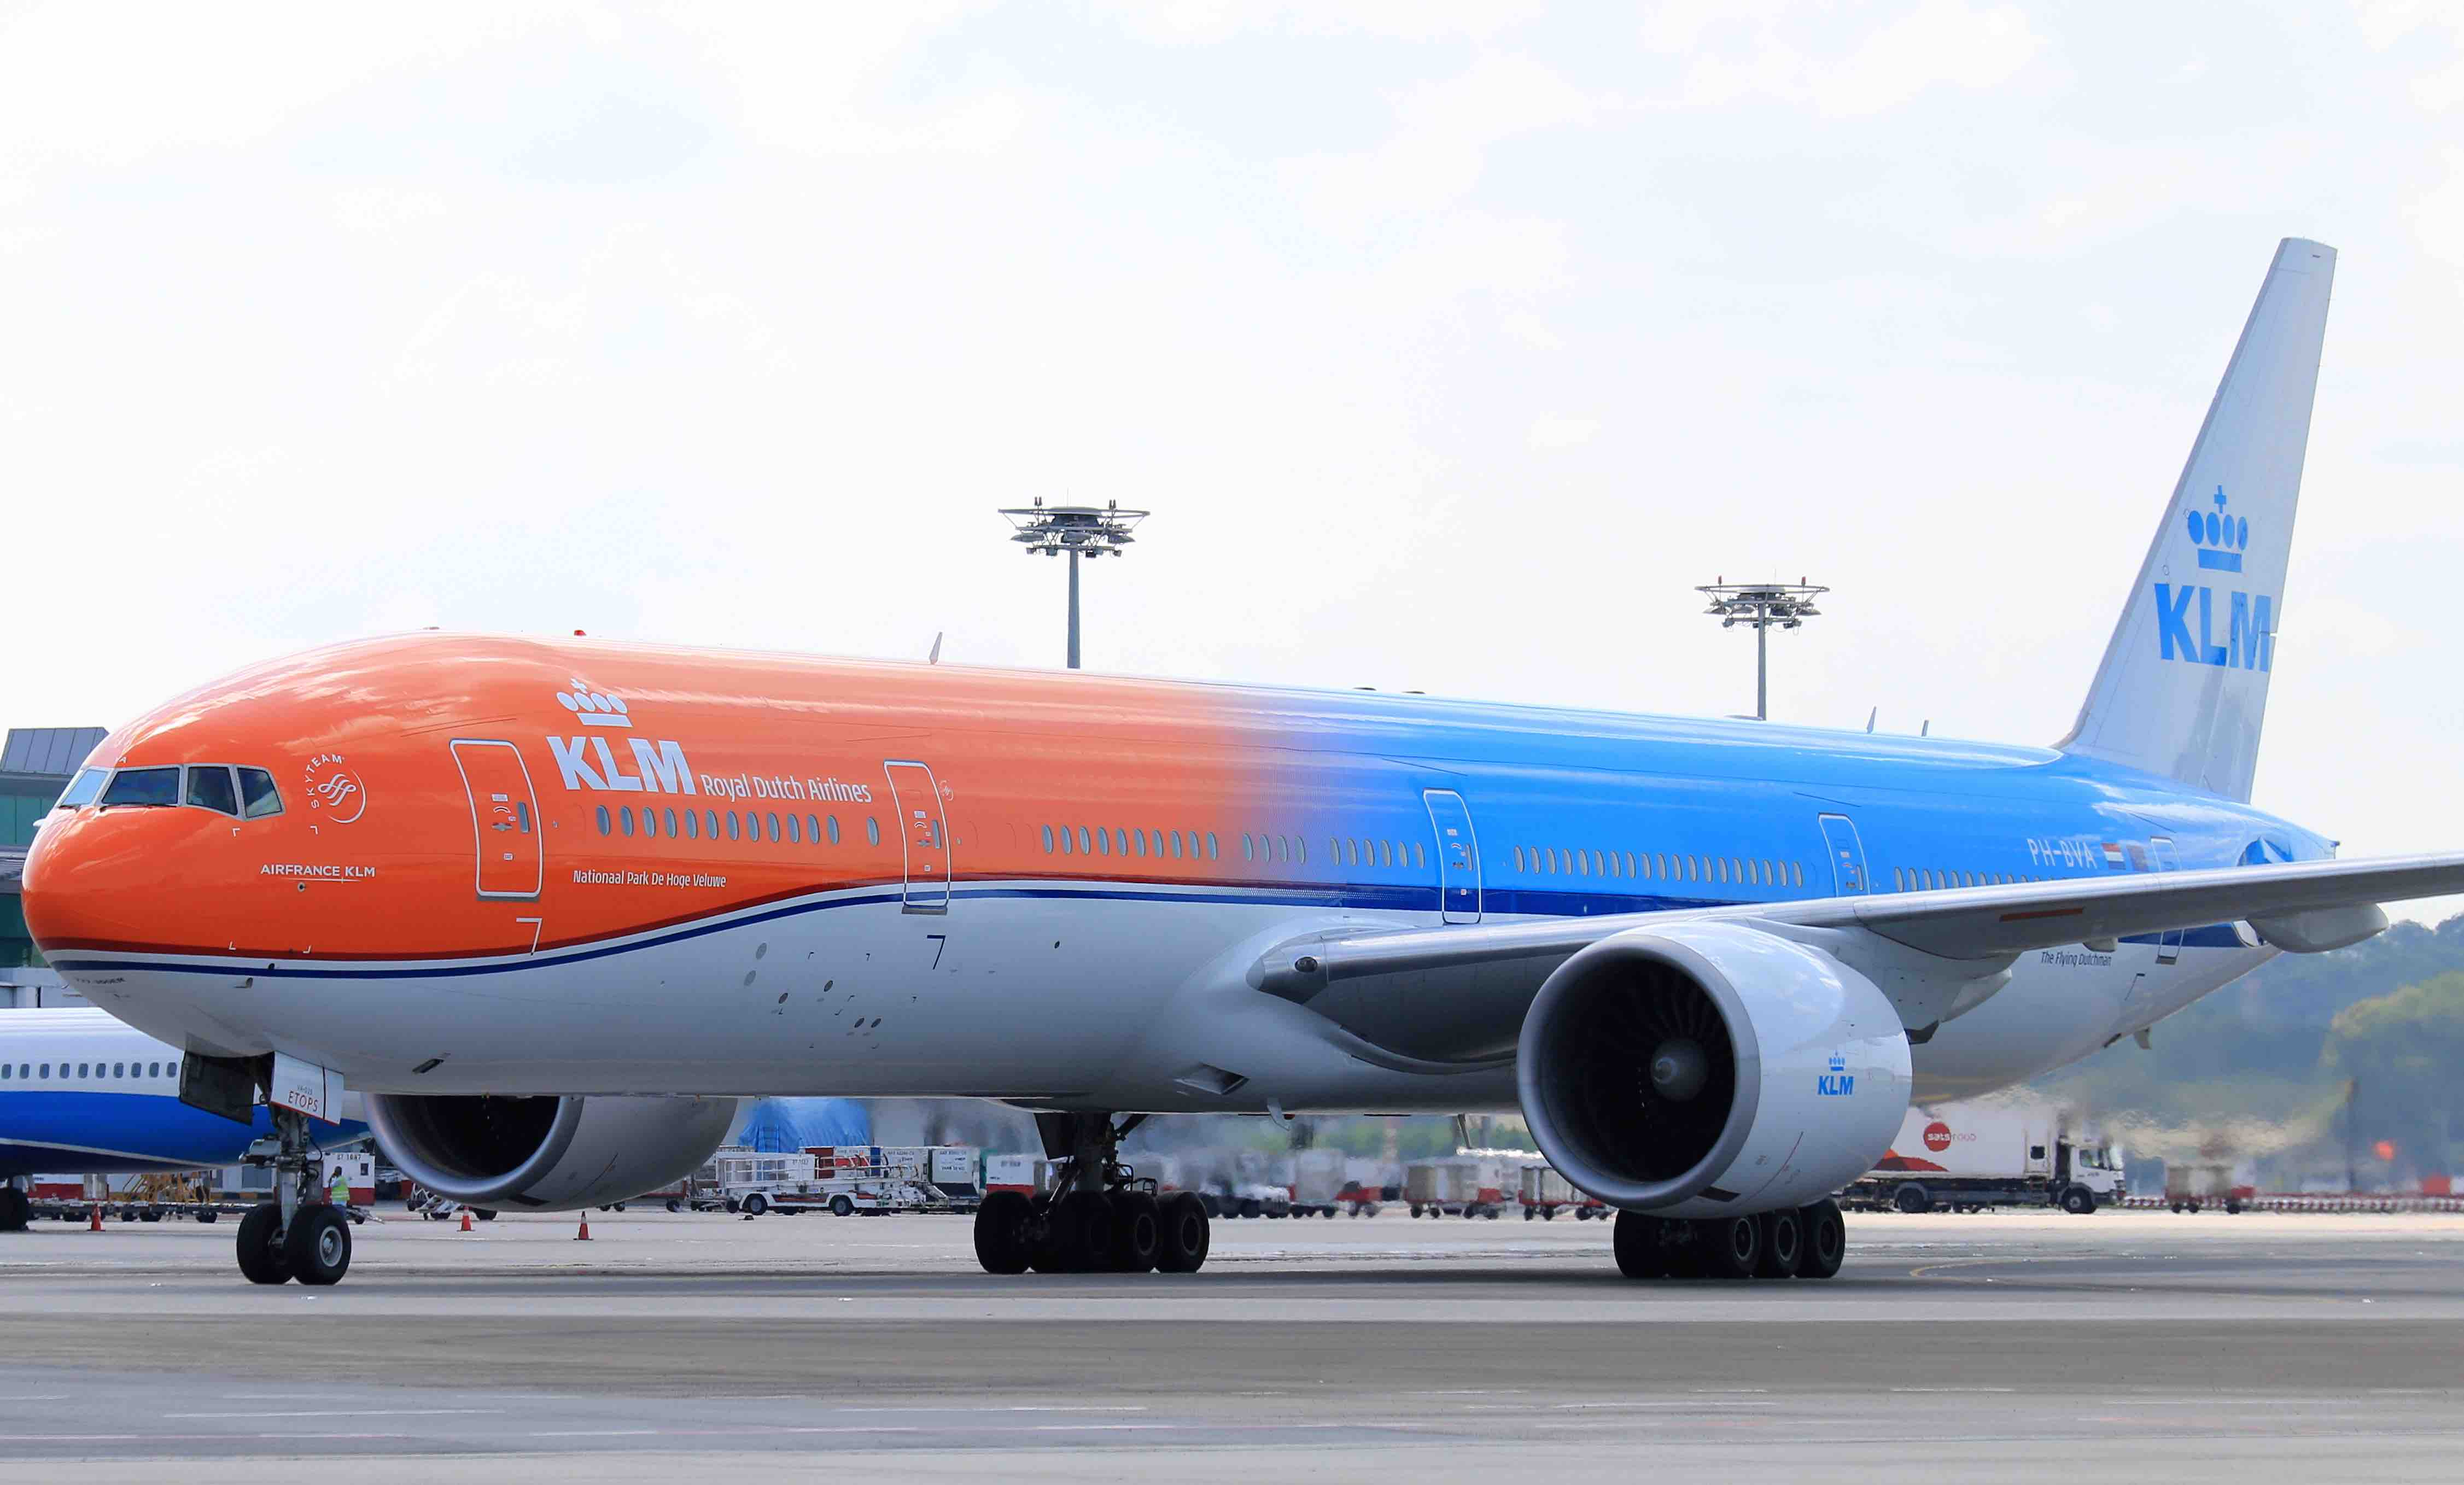 #Orangepride: KLM's Unique Orange Aircraft to  Promote the Netherlands in Singapore